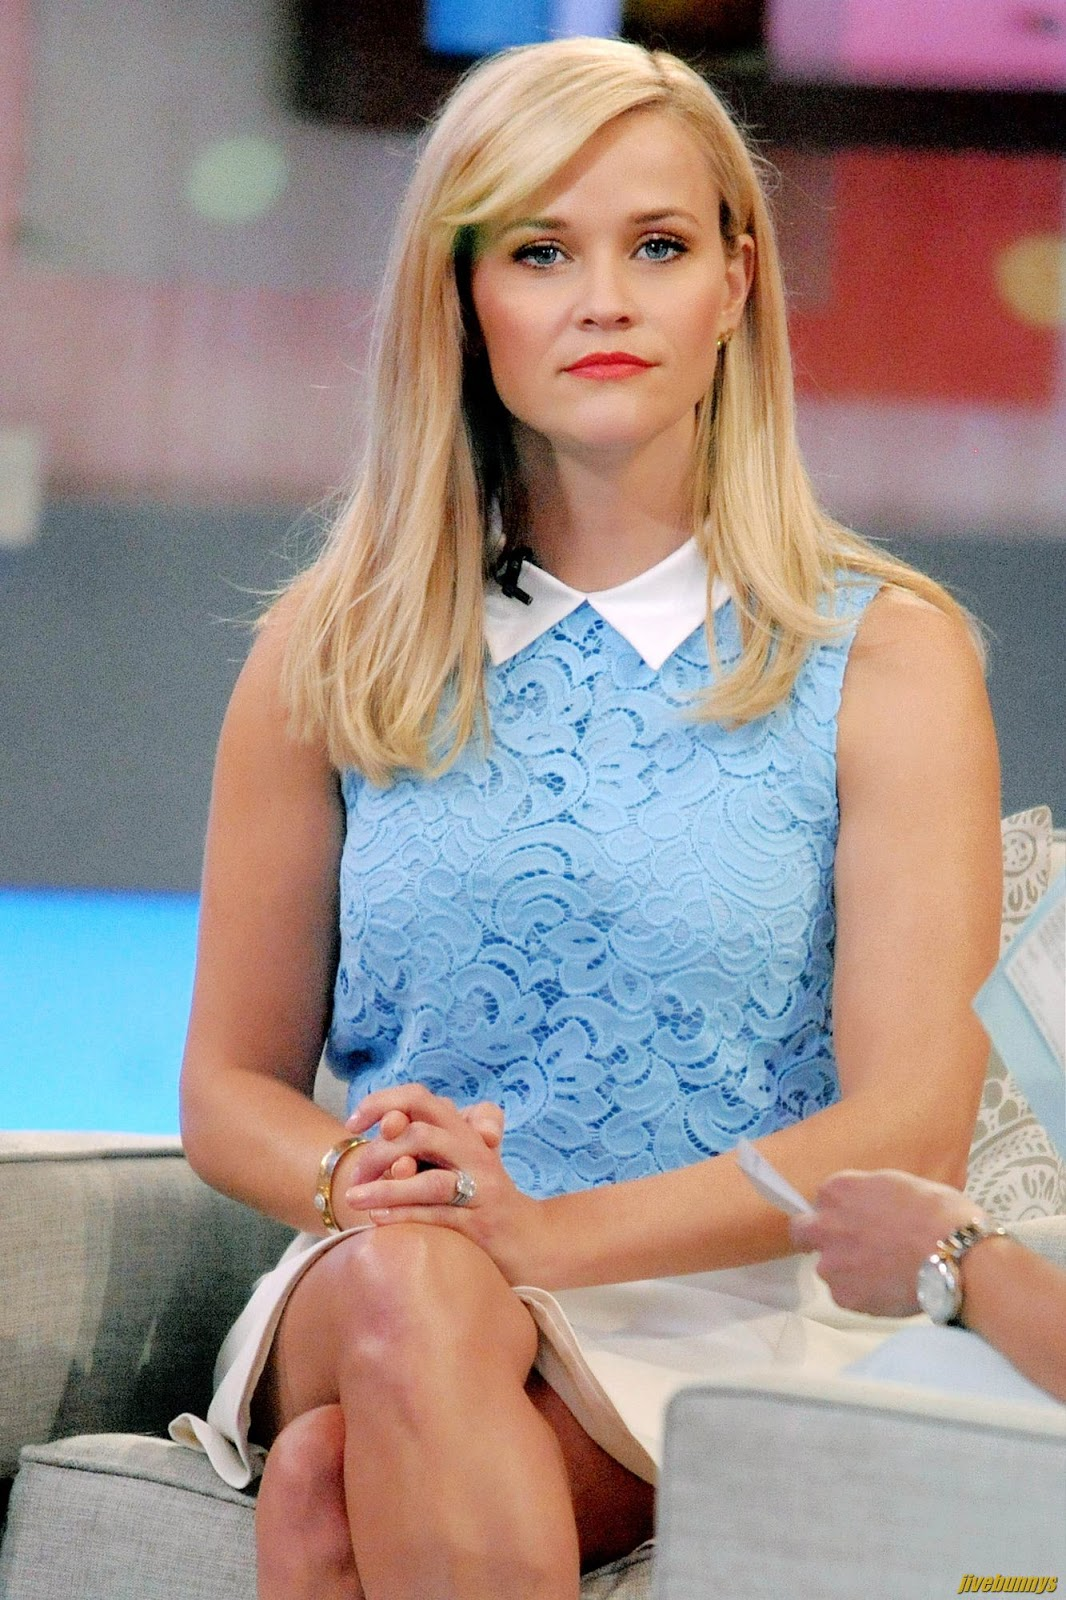 Jivebunnys Female Celebrity Picture Gallery: Reese ... Reese Witherspoon